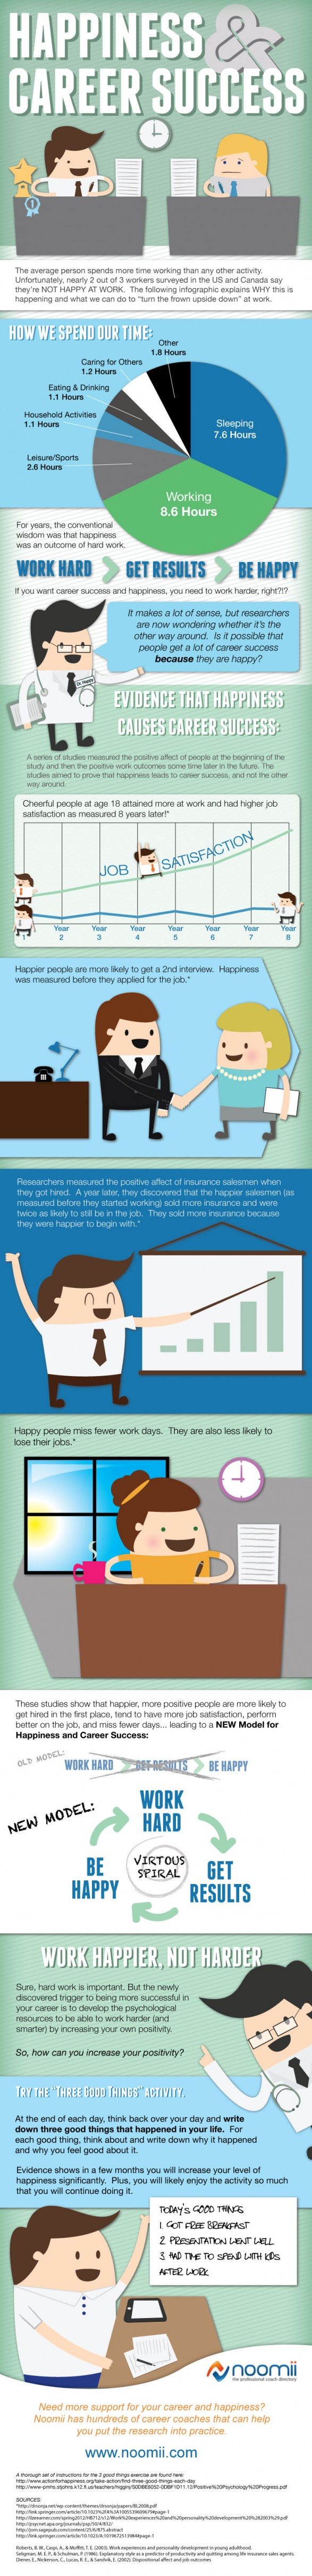 happiness--career-success-infographic_52480ce5b8b1f_w587